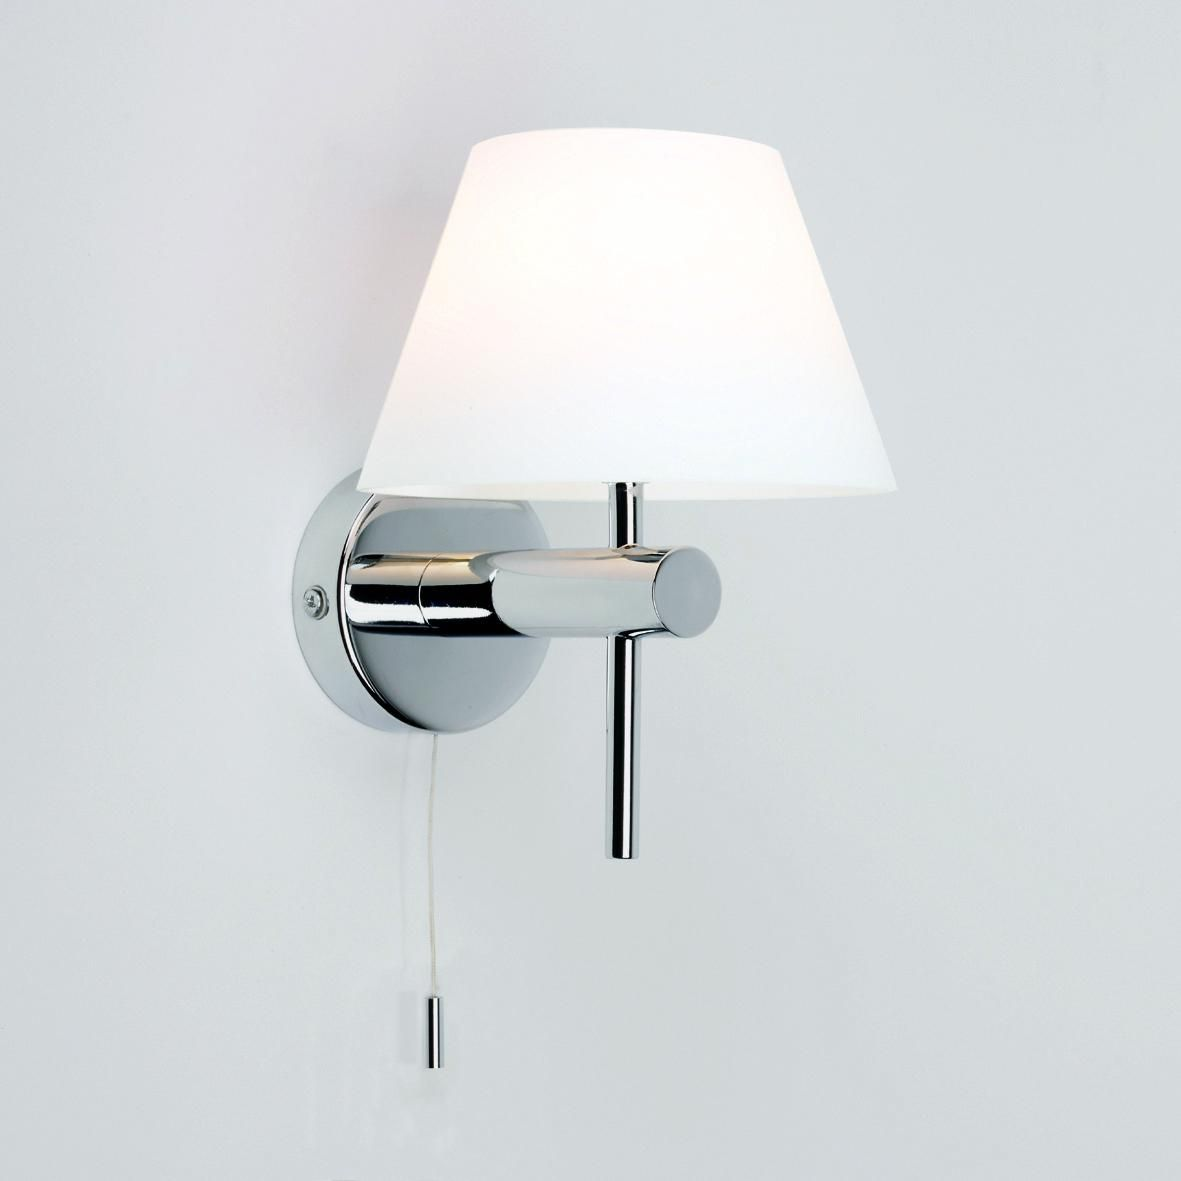 Bathroom Wall Light With Coolie Shade Pullcord